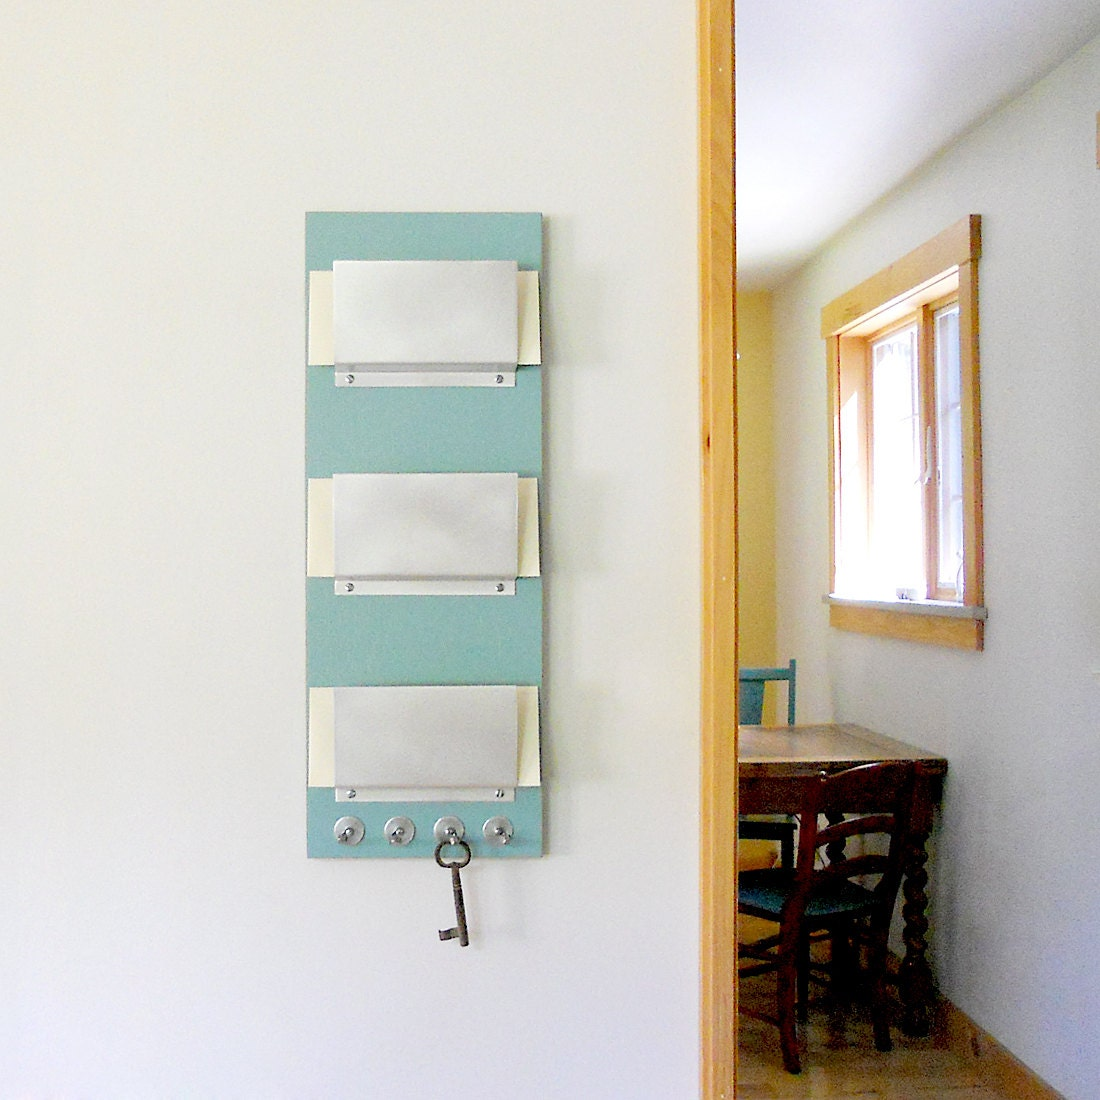 TRIPLE MAIL HOLDER: Wall Mount Family 3 Slot Mail Organizer